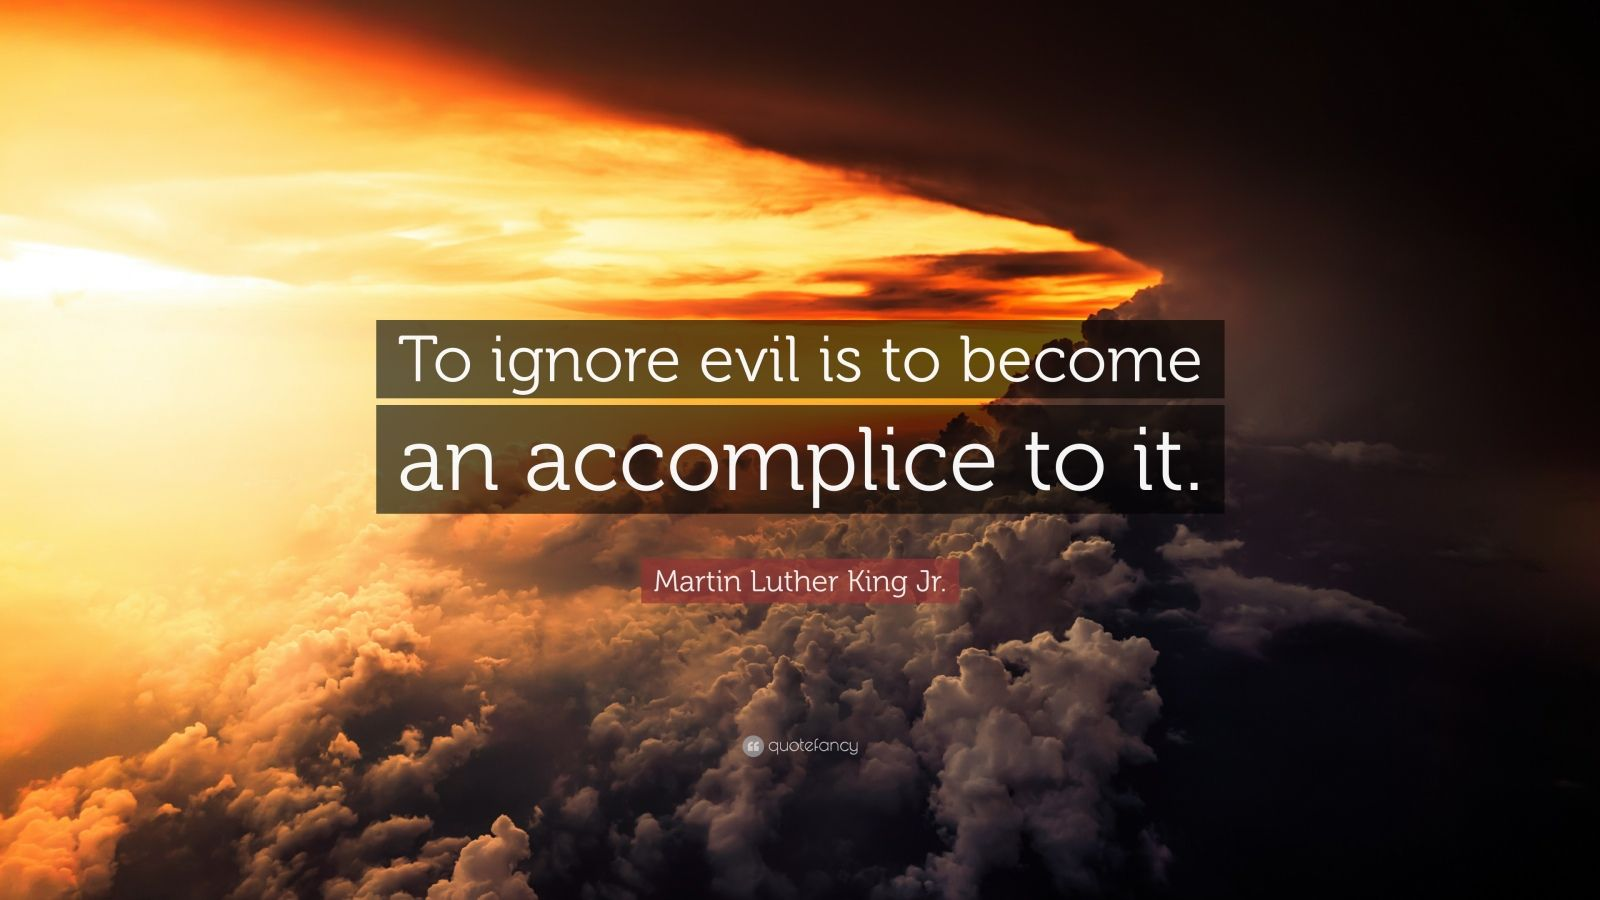 """Martin Luther King Jr. Quote: """"To ignore evil is to become an accomplice to it."""""""